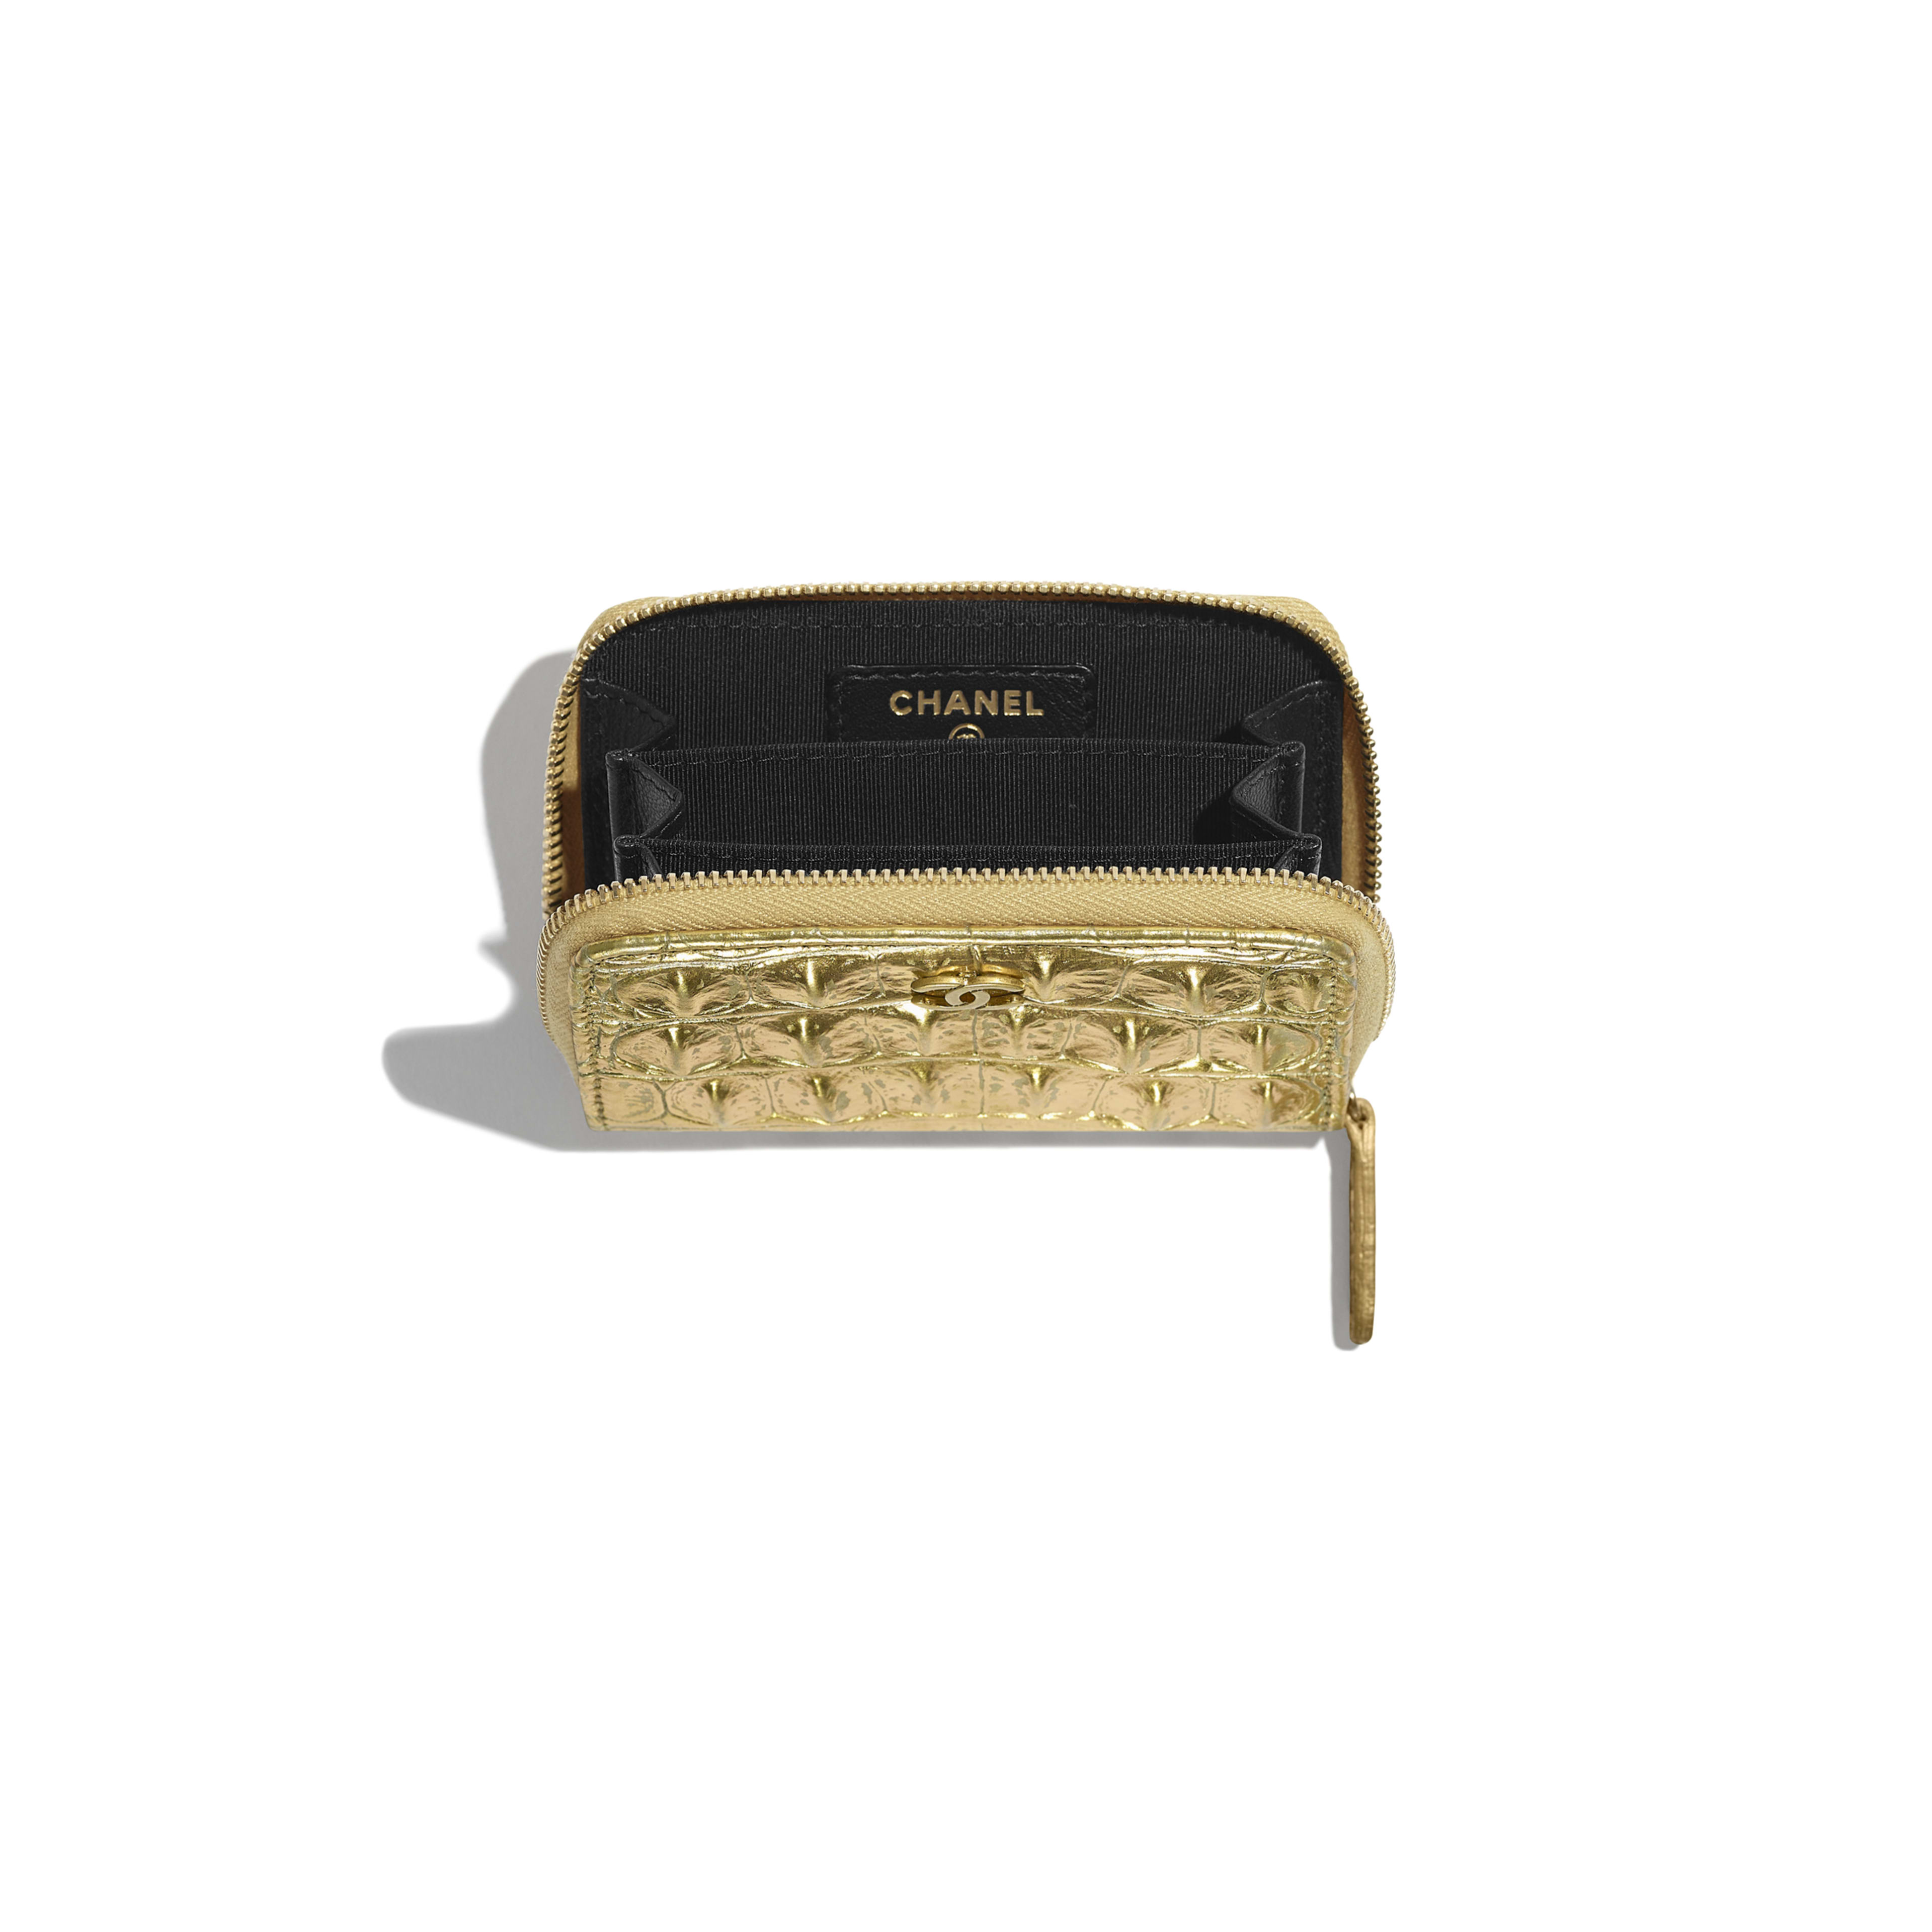 Classic Zipped Coin Purse - Gold - Metallic Crocodile Embossed Calfskin & Gold Metal - Other view - see full sized version